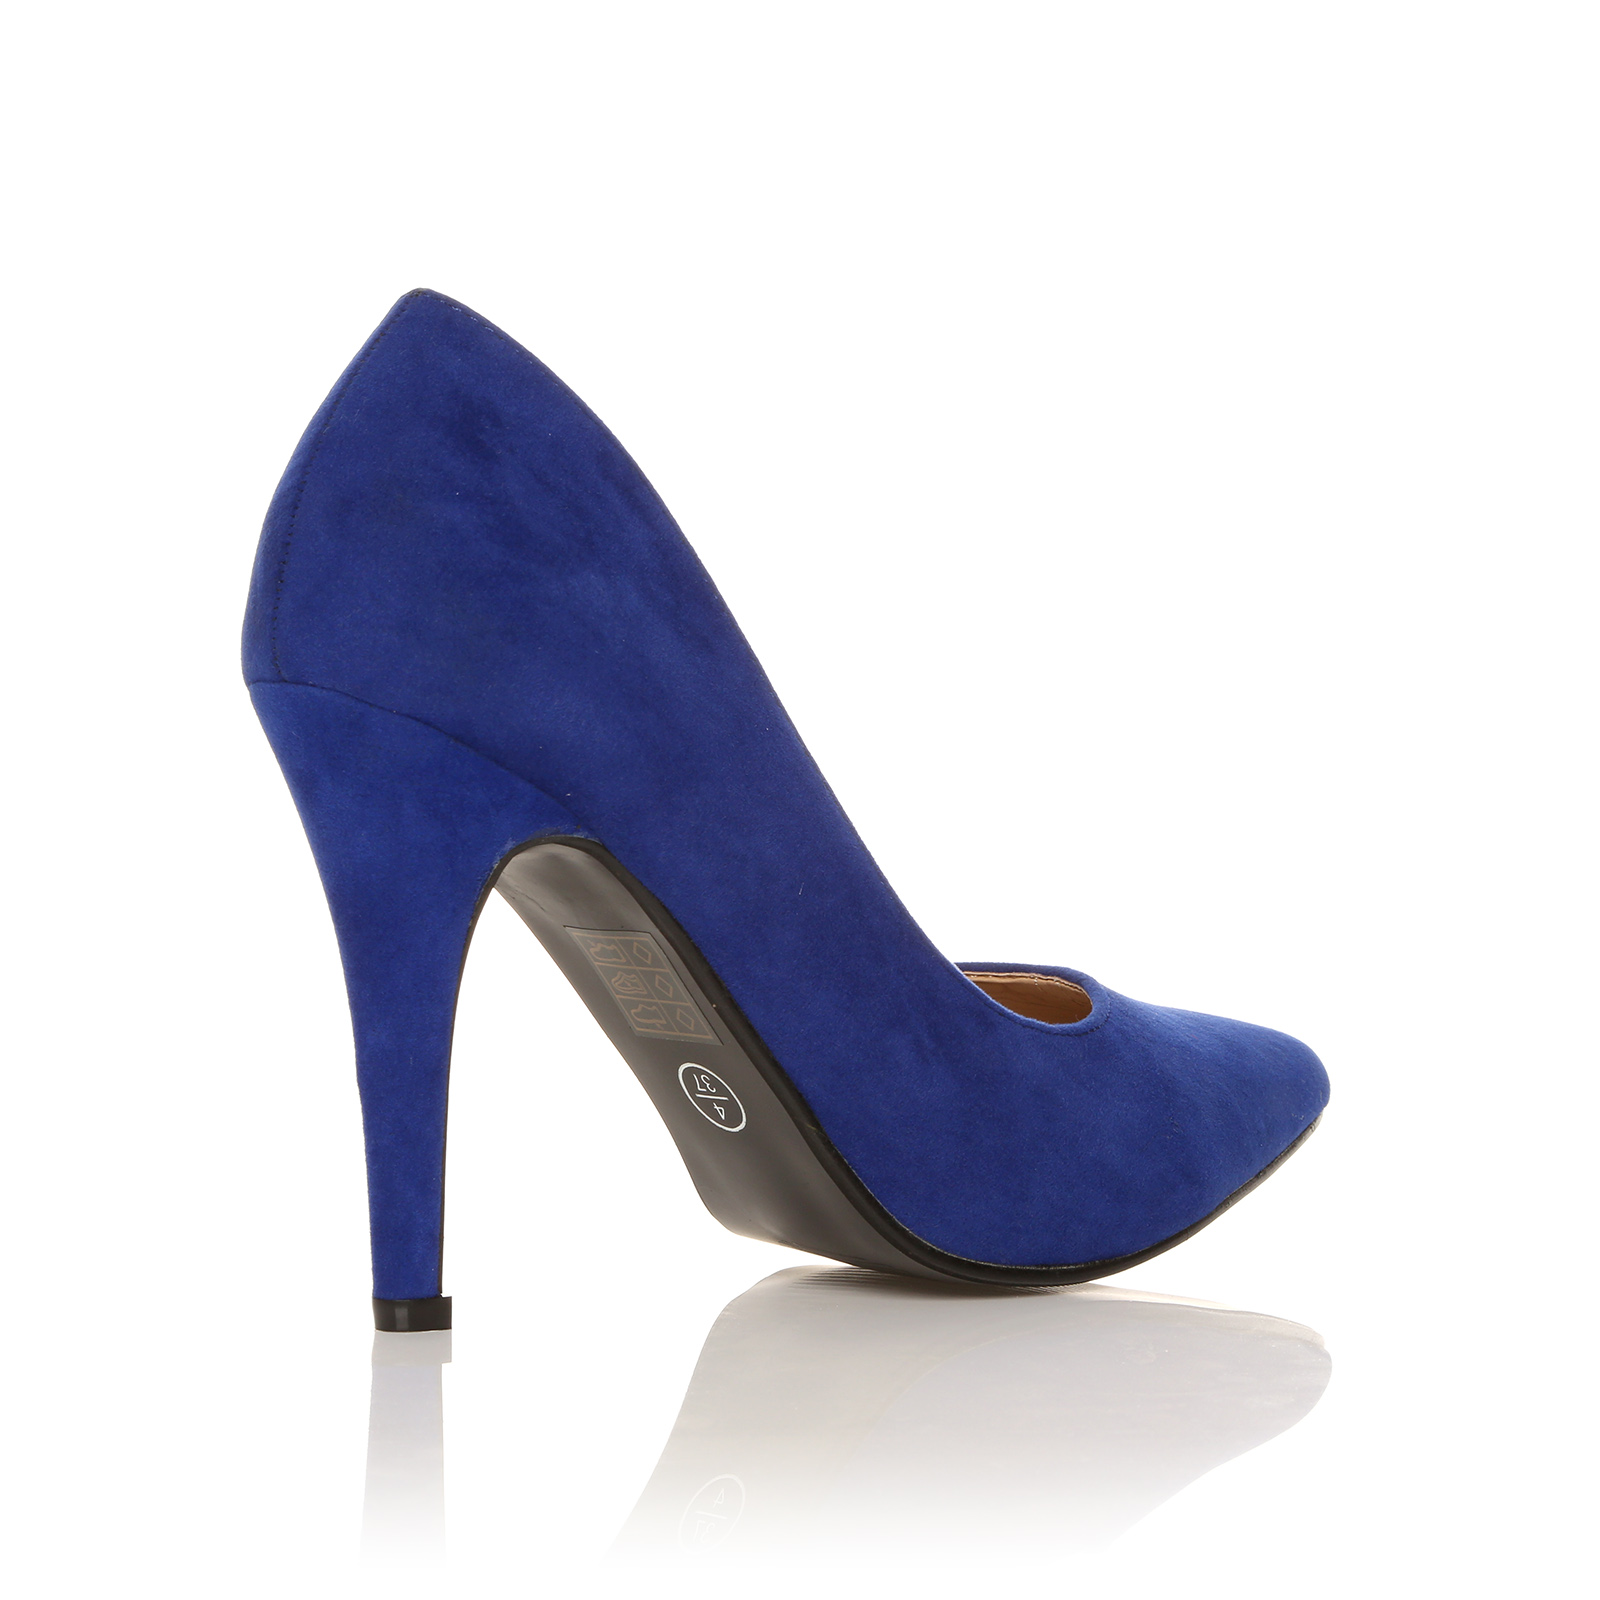 LADIES-HIGH-HEELS-NEW-STILETTO-COURT-SHOES-CASUAL-HEELS-SIZE-3-8